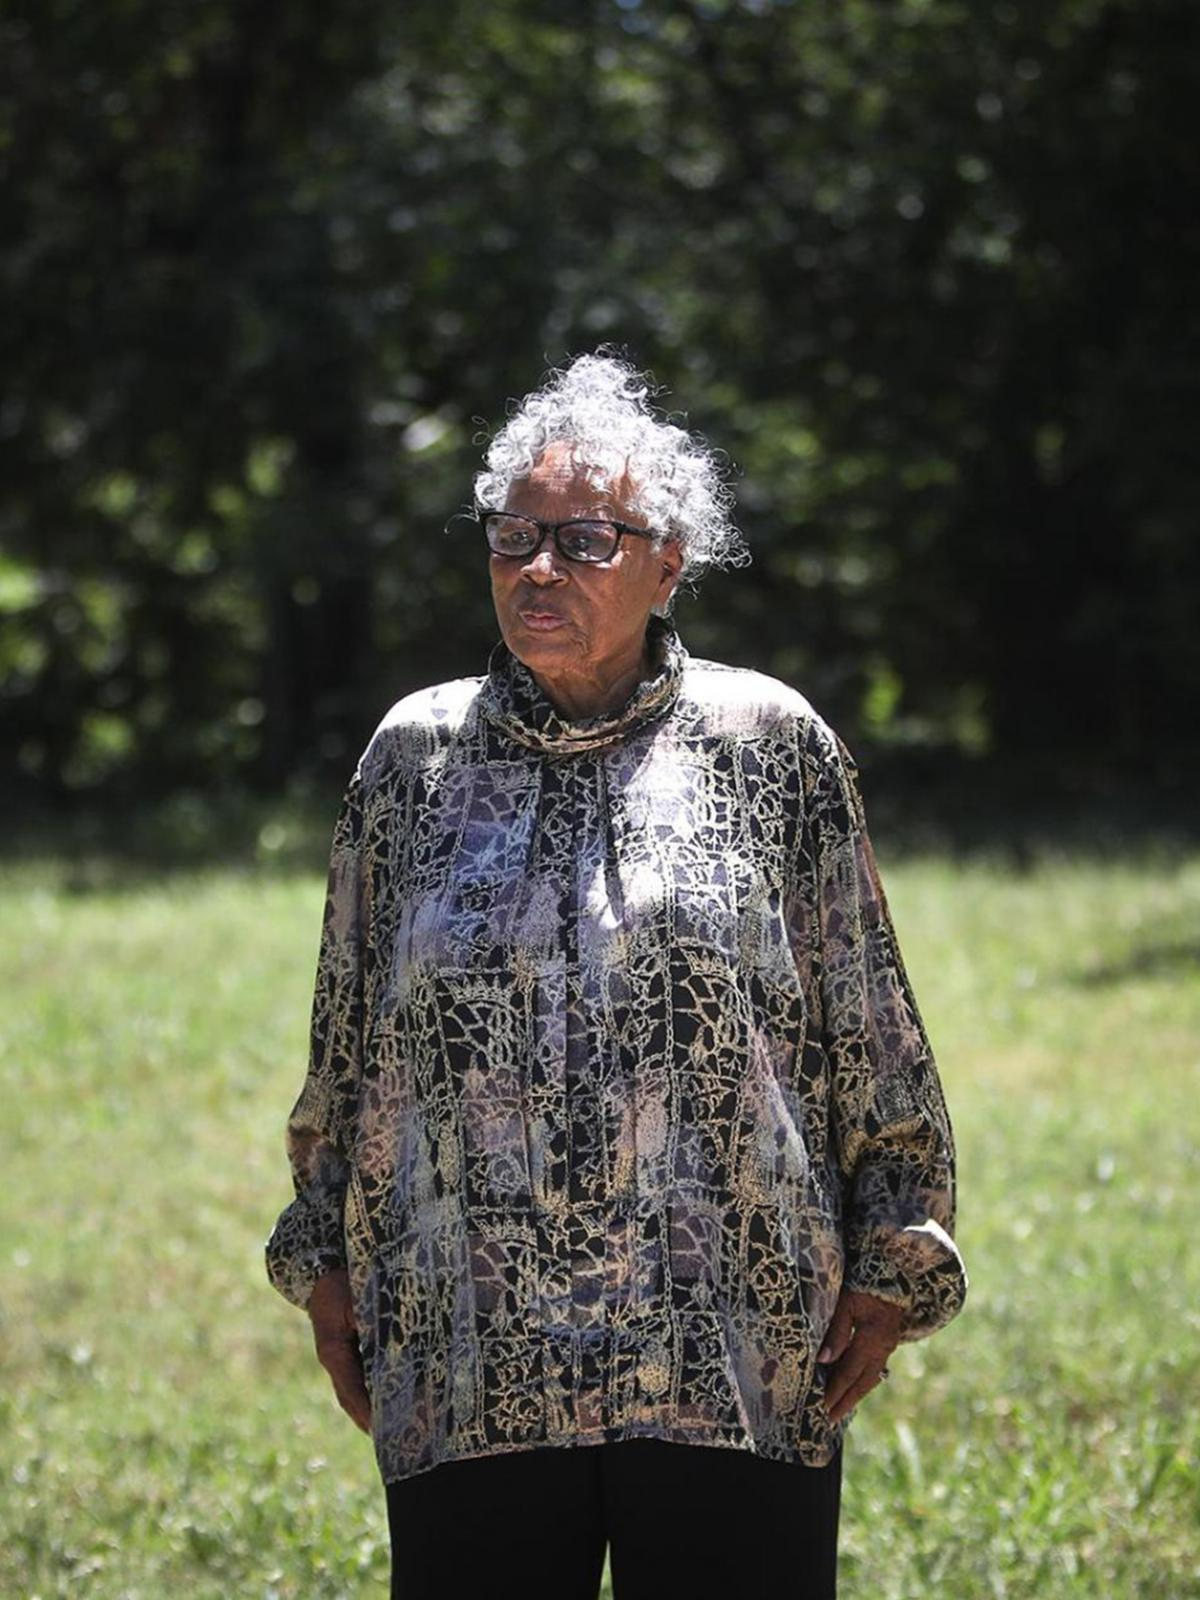 Opal Lee stands in front of the East Annie Street lot on June 2, 2021, where white rioters attacked, invaded and burned her family's home in Fort Worth, Texas in 1939. (Amanda McCoy/Fort Worth Star-Telegram/Tribune News Service via Getty Images)